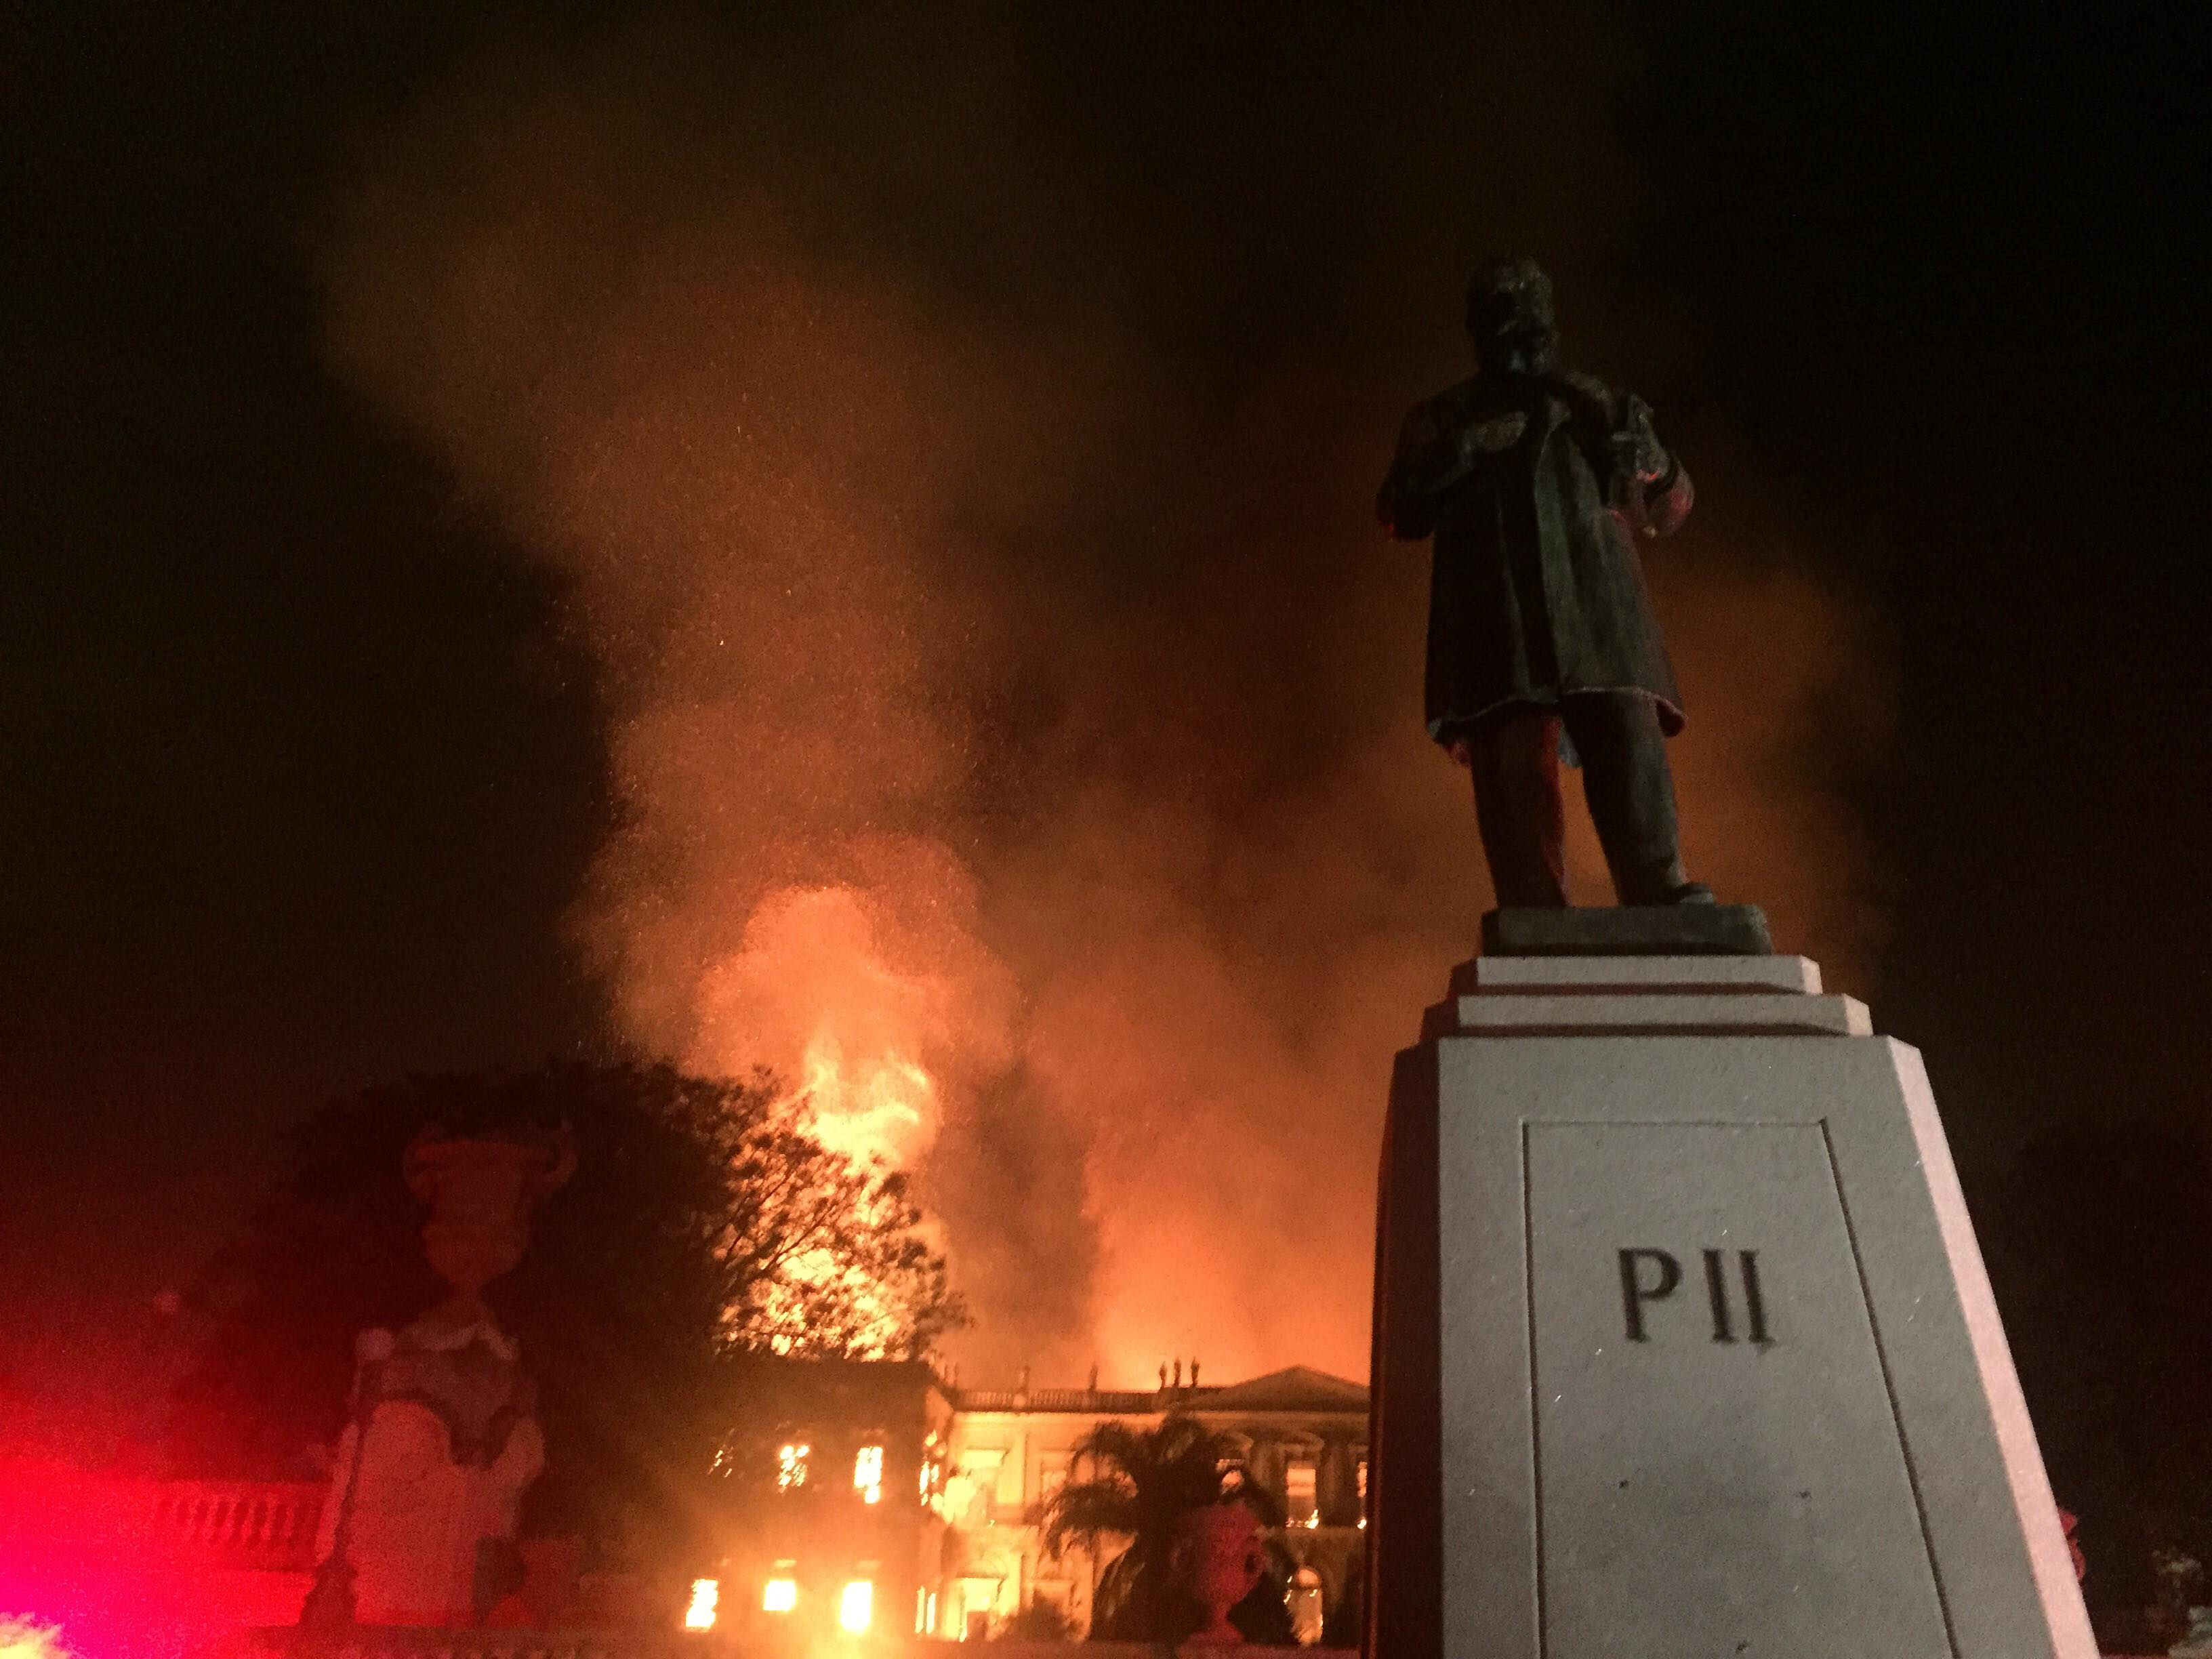 National Brazilian Museum under fire. By Felipe Milanez - Sent by the photographer -- OTRS-sent, CC BY-SA 4.0, https://commons.wikimedia.org/w/index.php?curid=72299257